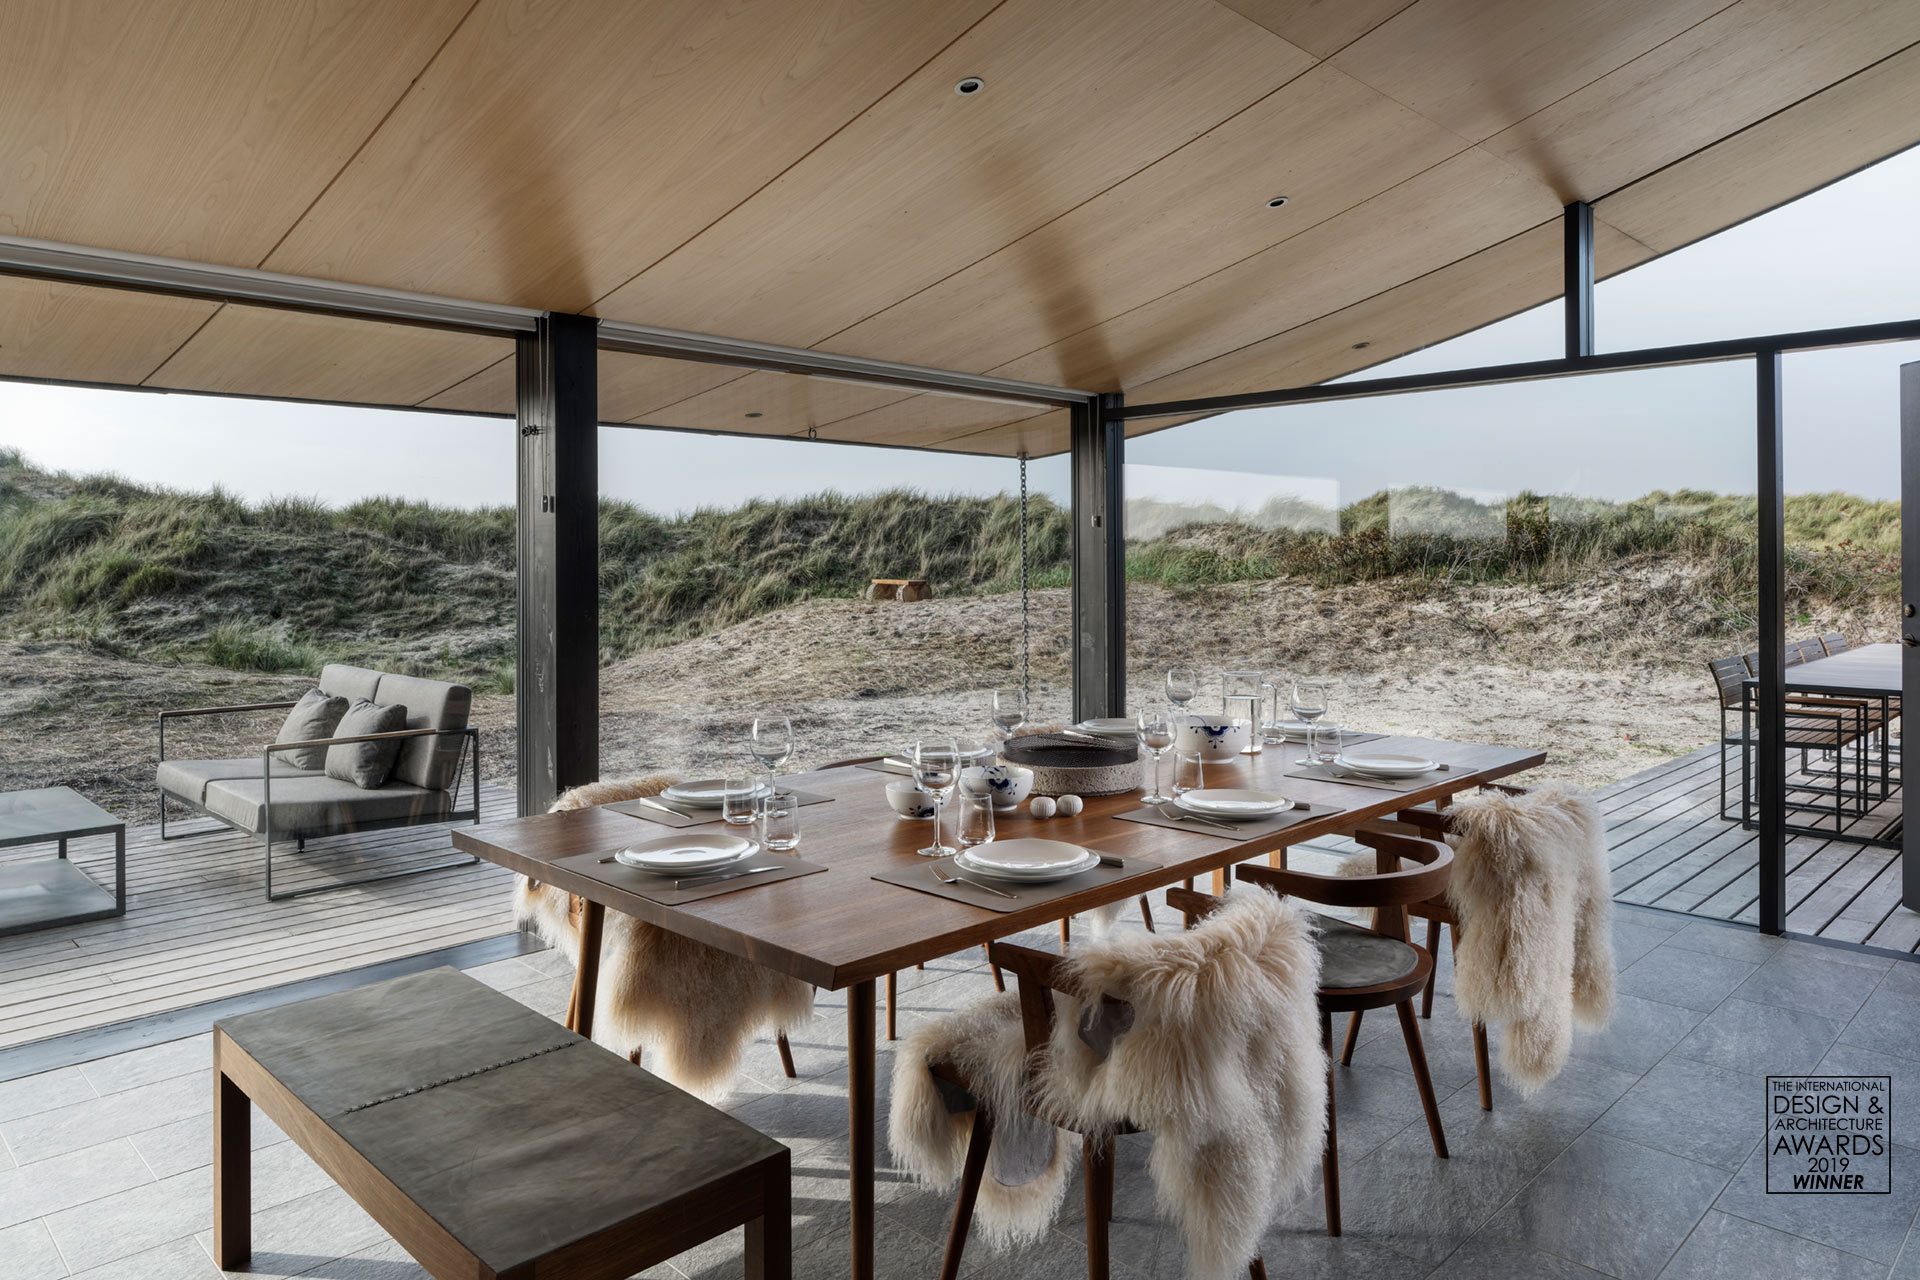 The award winning Fanø Summer House by Tollgård Design Group. Architect: Knud Holscher